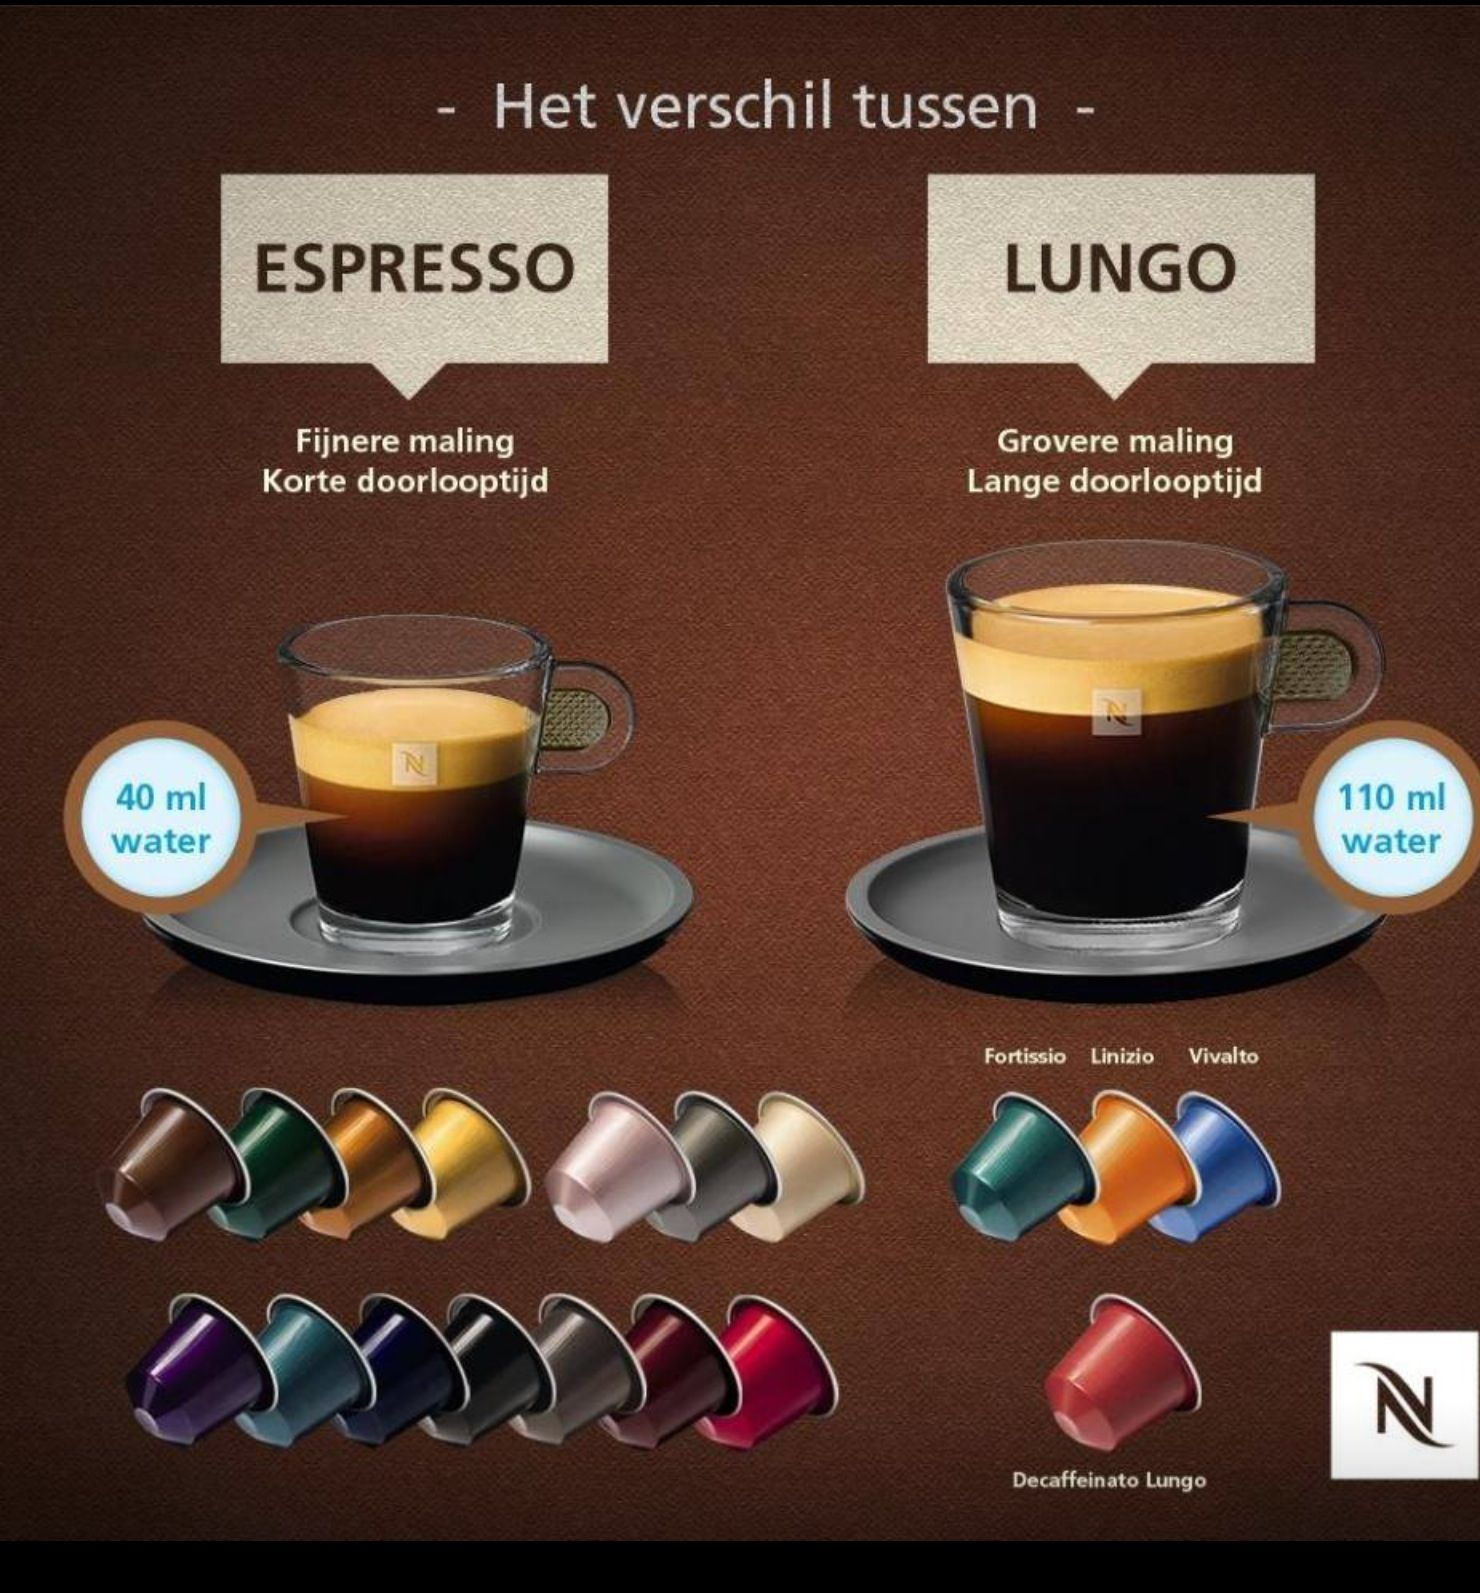 Pin by Monica Compton on Nespresso What else? Nespresso